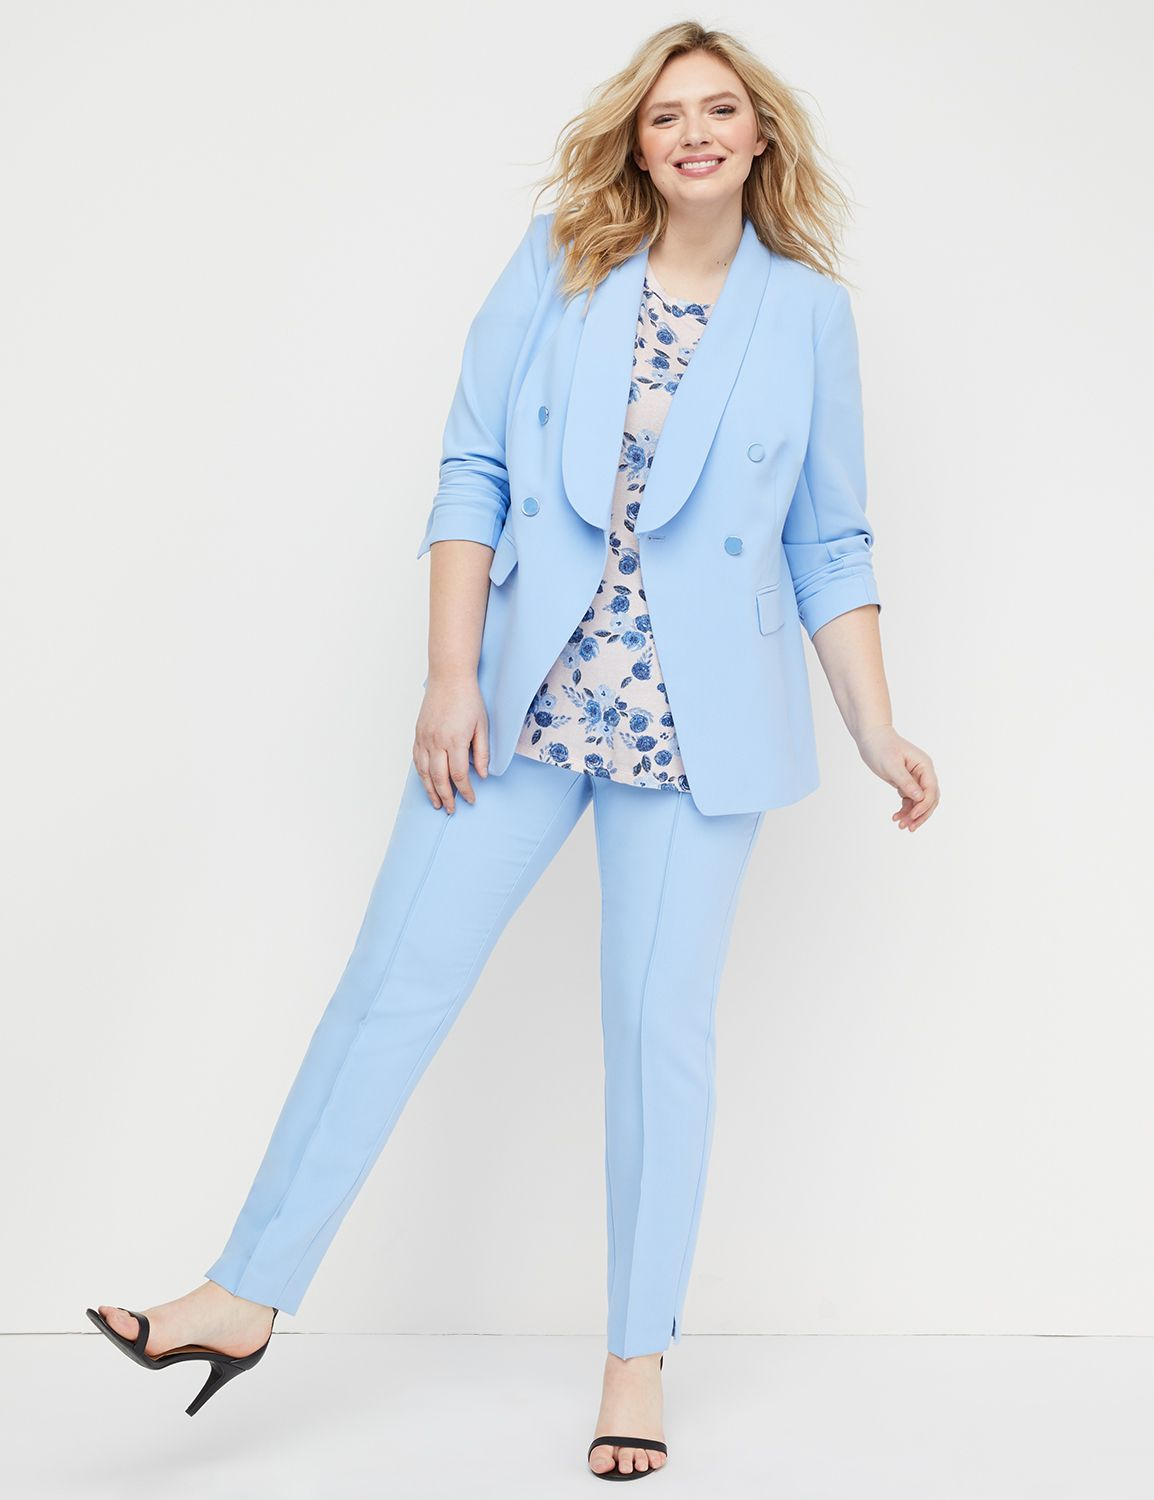 Plus Size Suits for Spring- Double Breasted Modern Stretch Suit